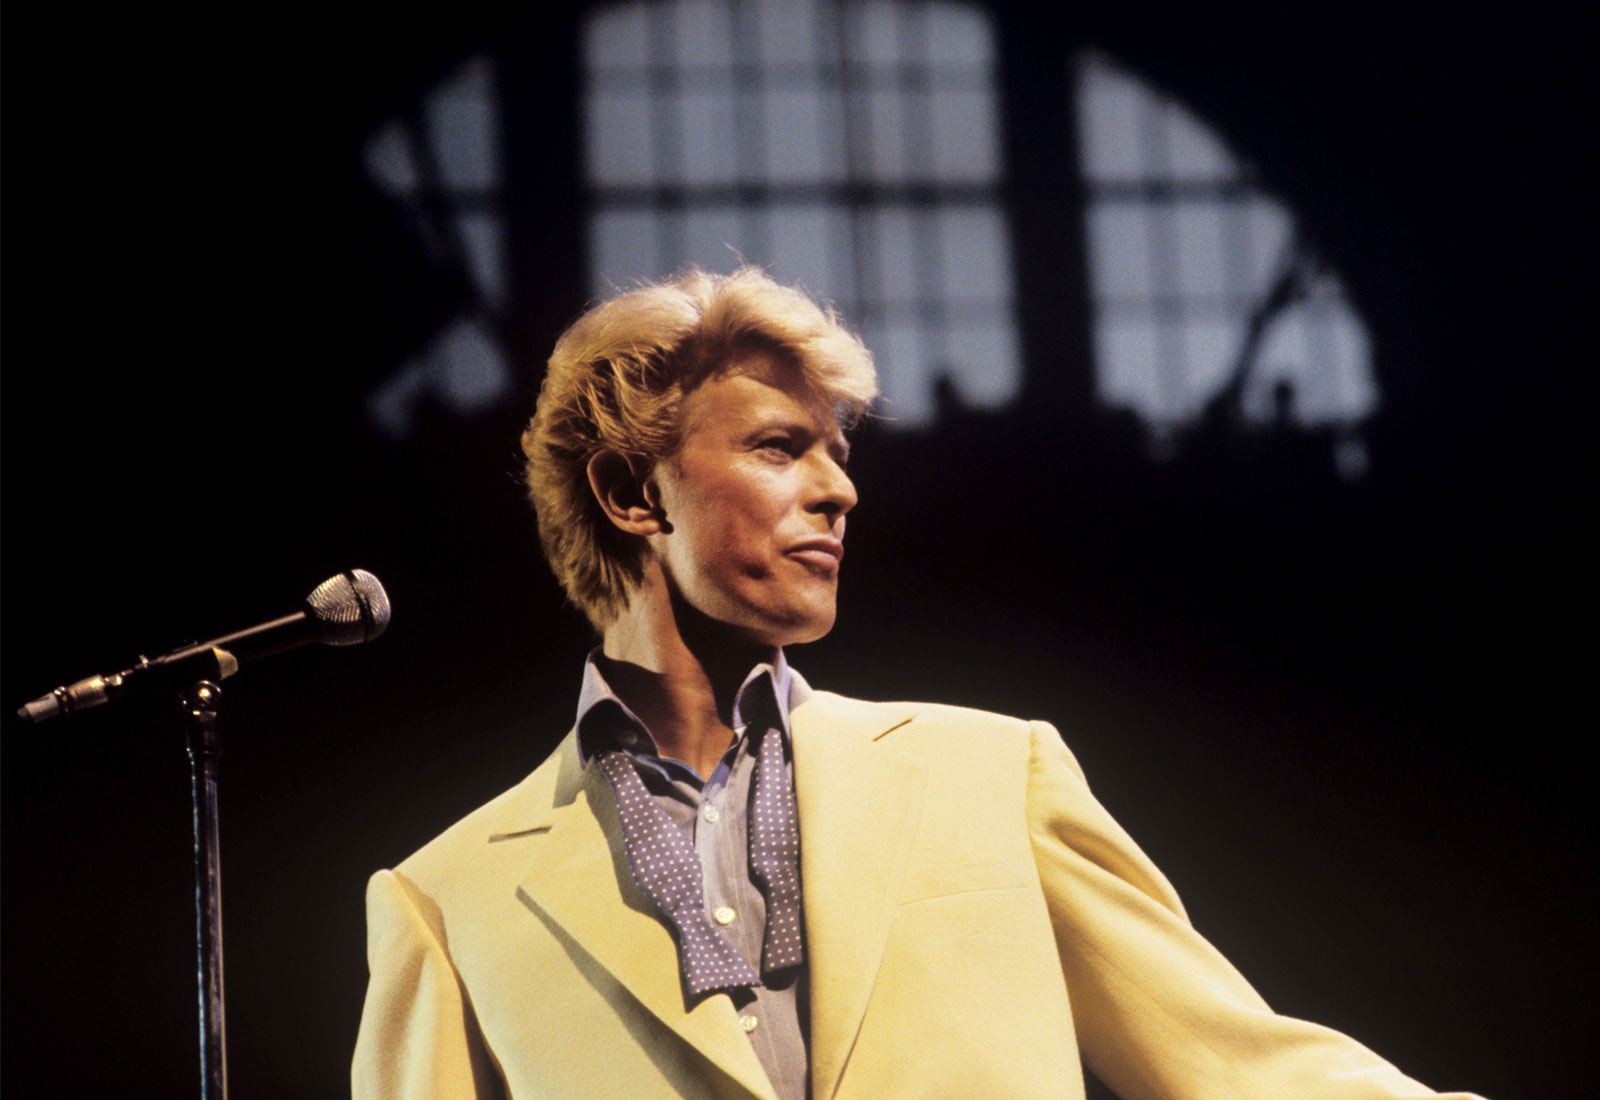 david bowie music legend